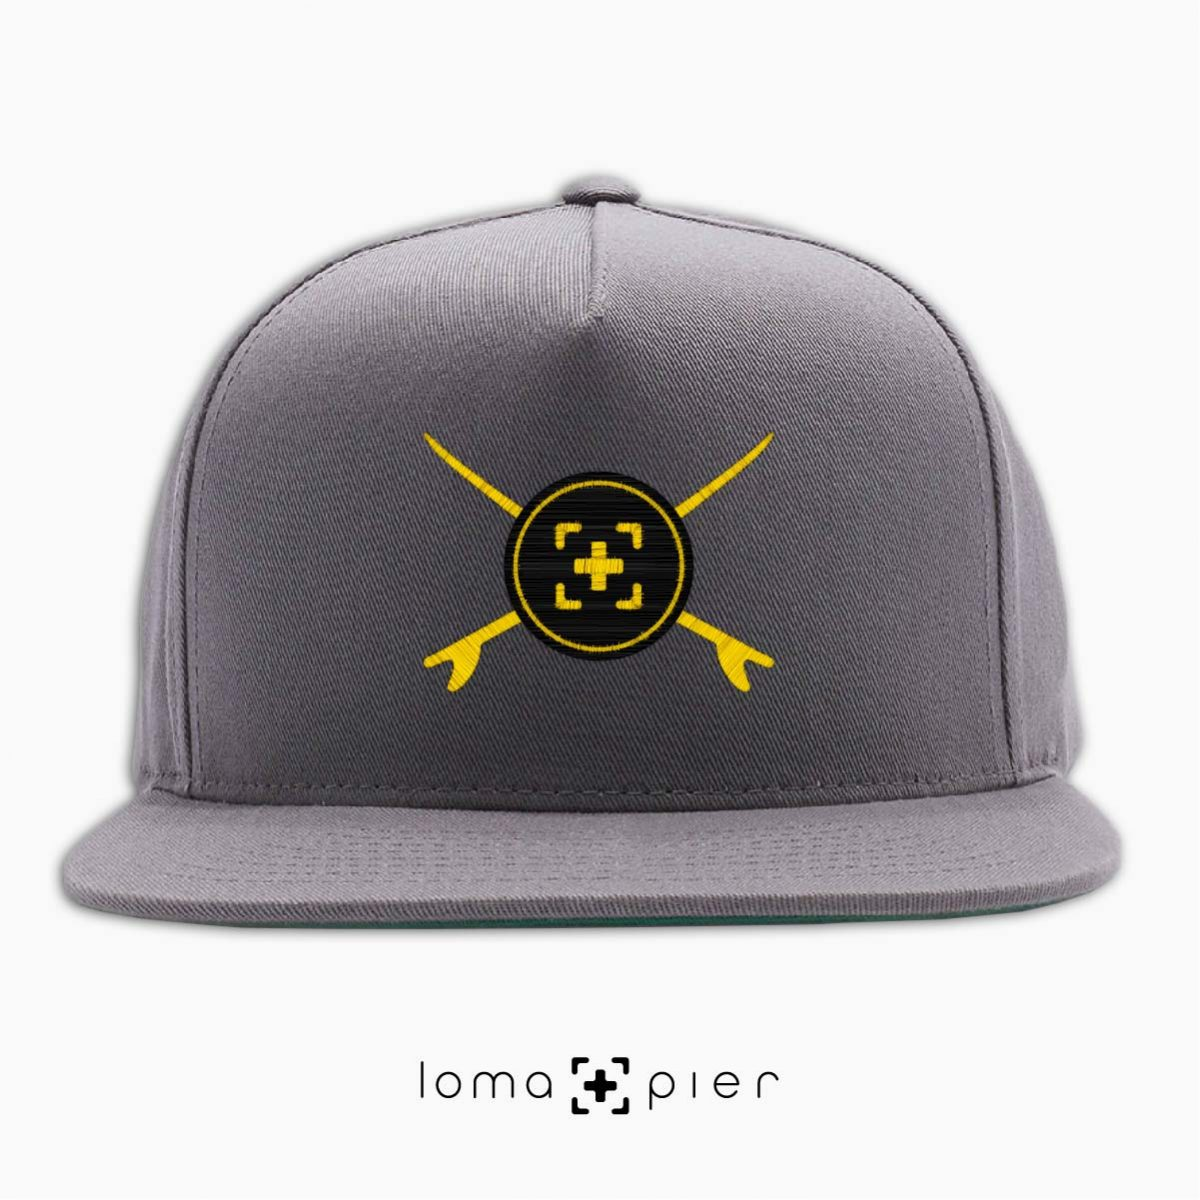 SURFERS BADGE hermosa beach snapback hat in grey by lomapier hat store